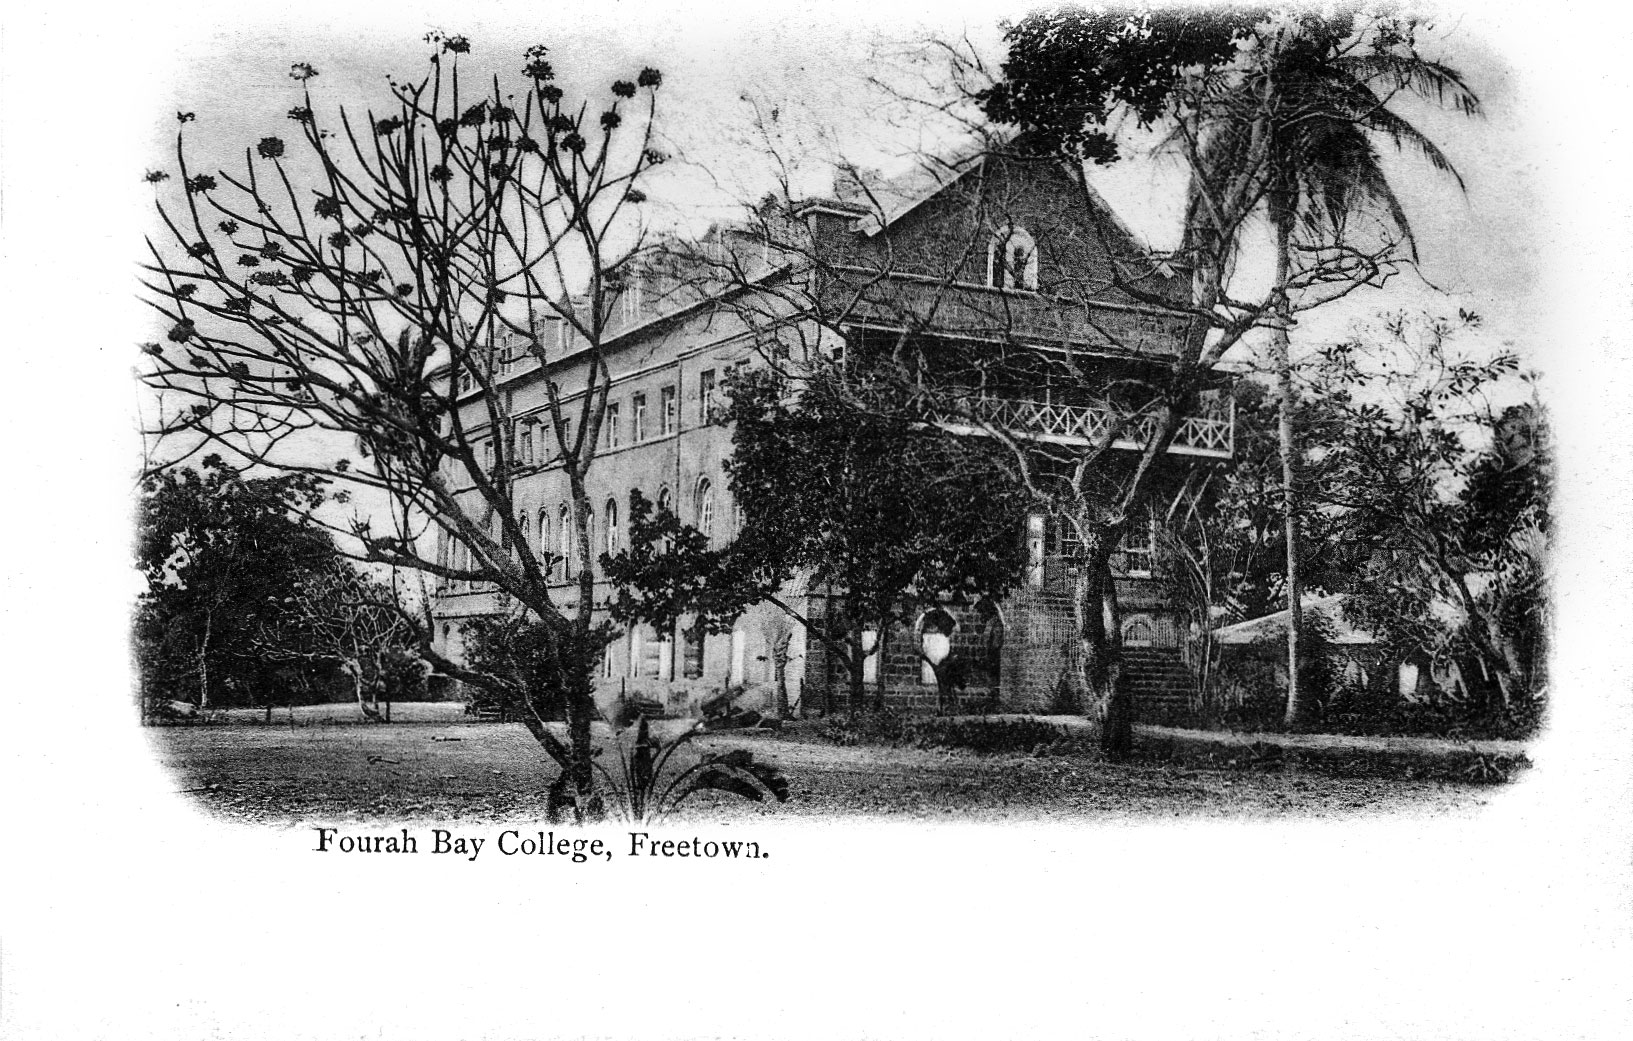 Fourah Bay College